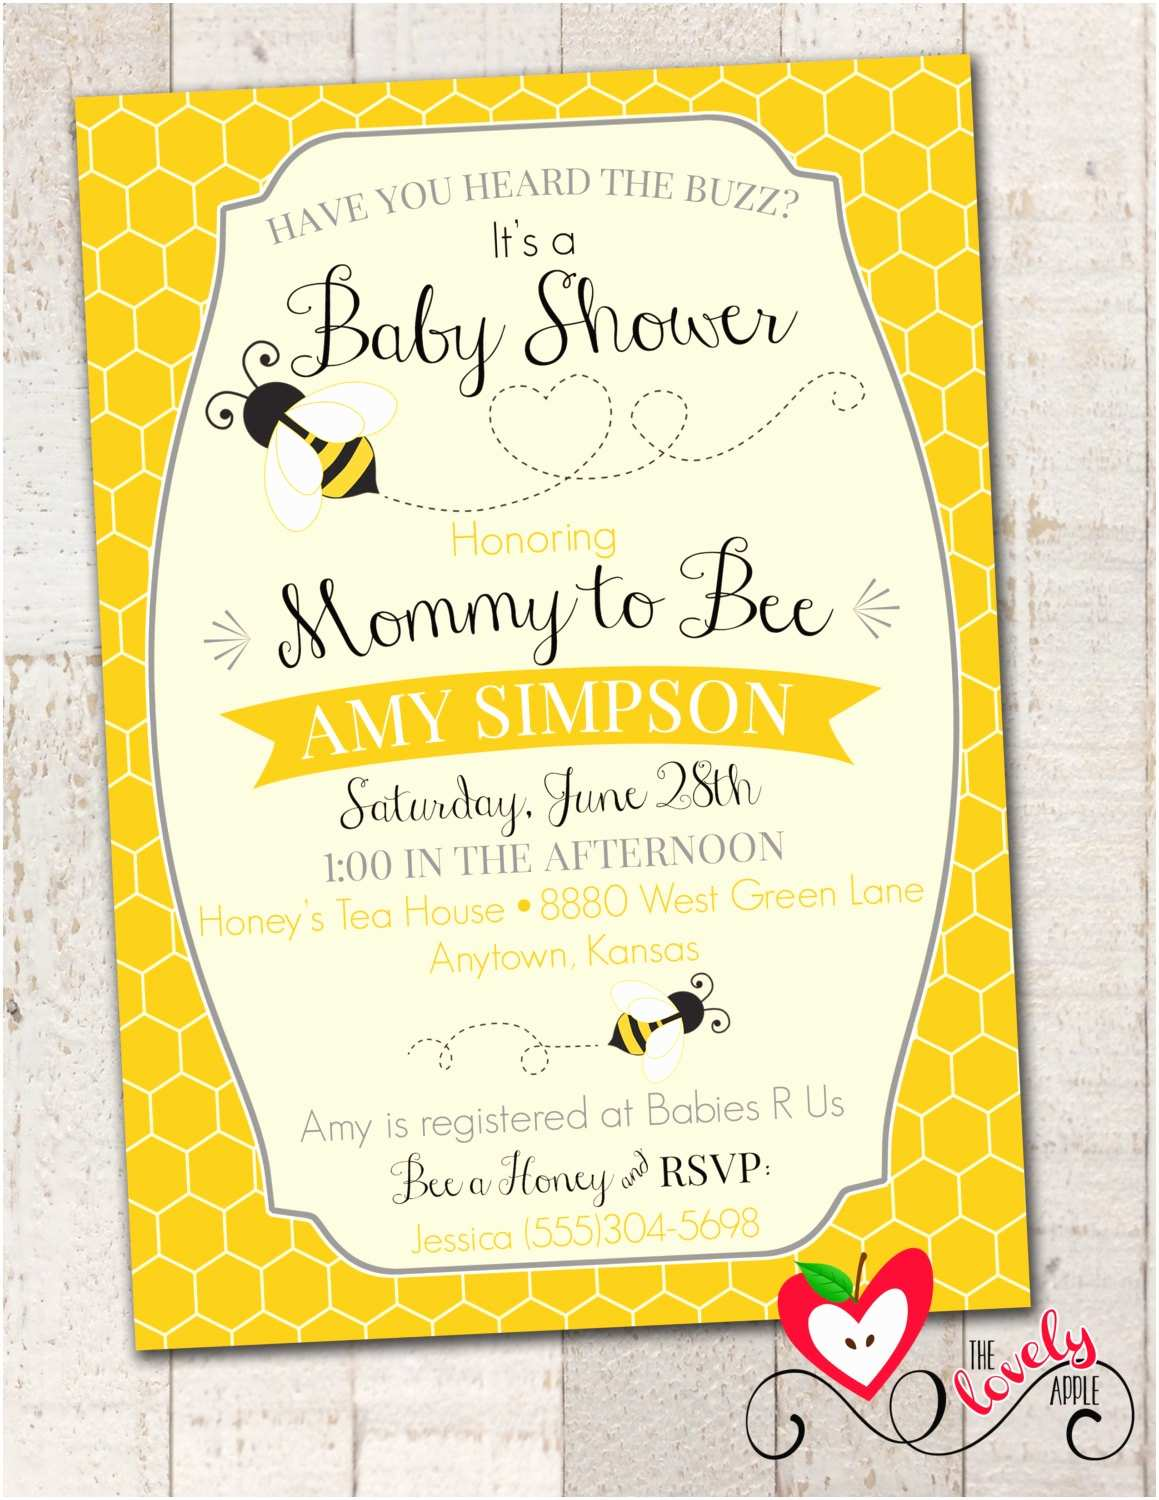 Bee Baby Shower Invitations Bumble Bee Baby Shower Invitation Printable by thelovelyapple